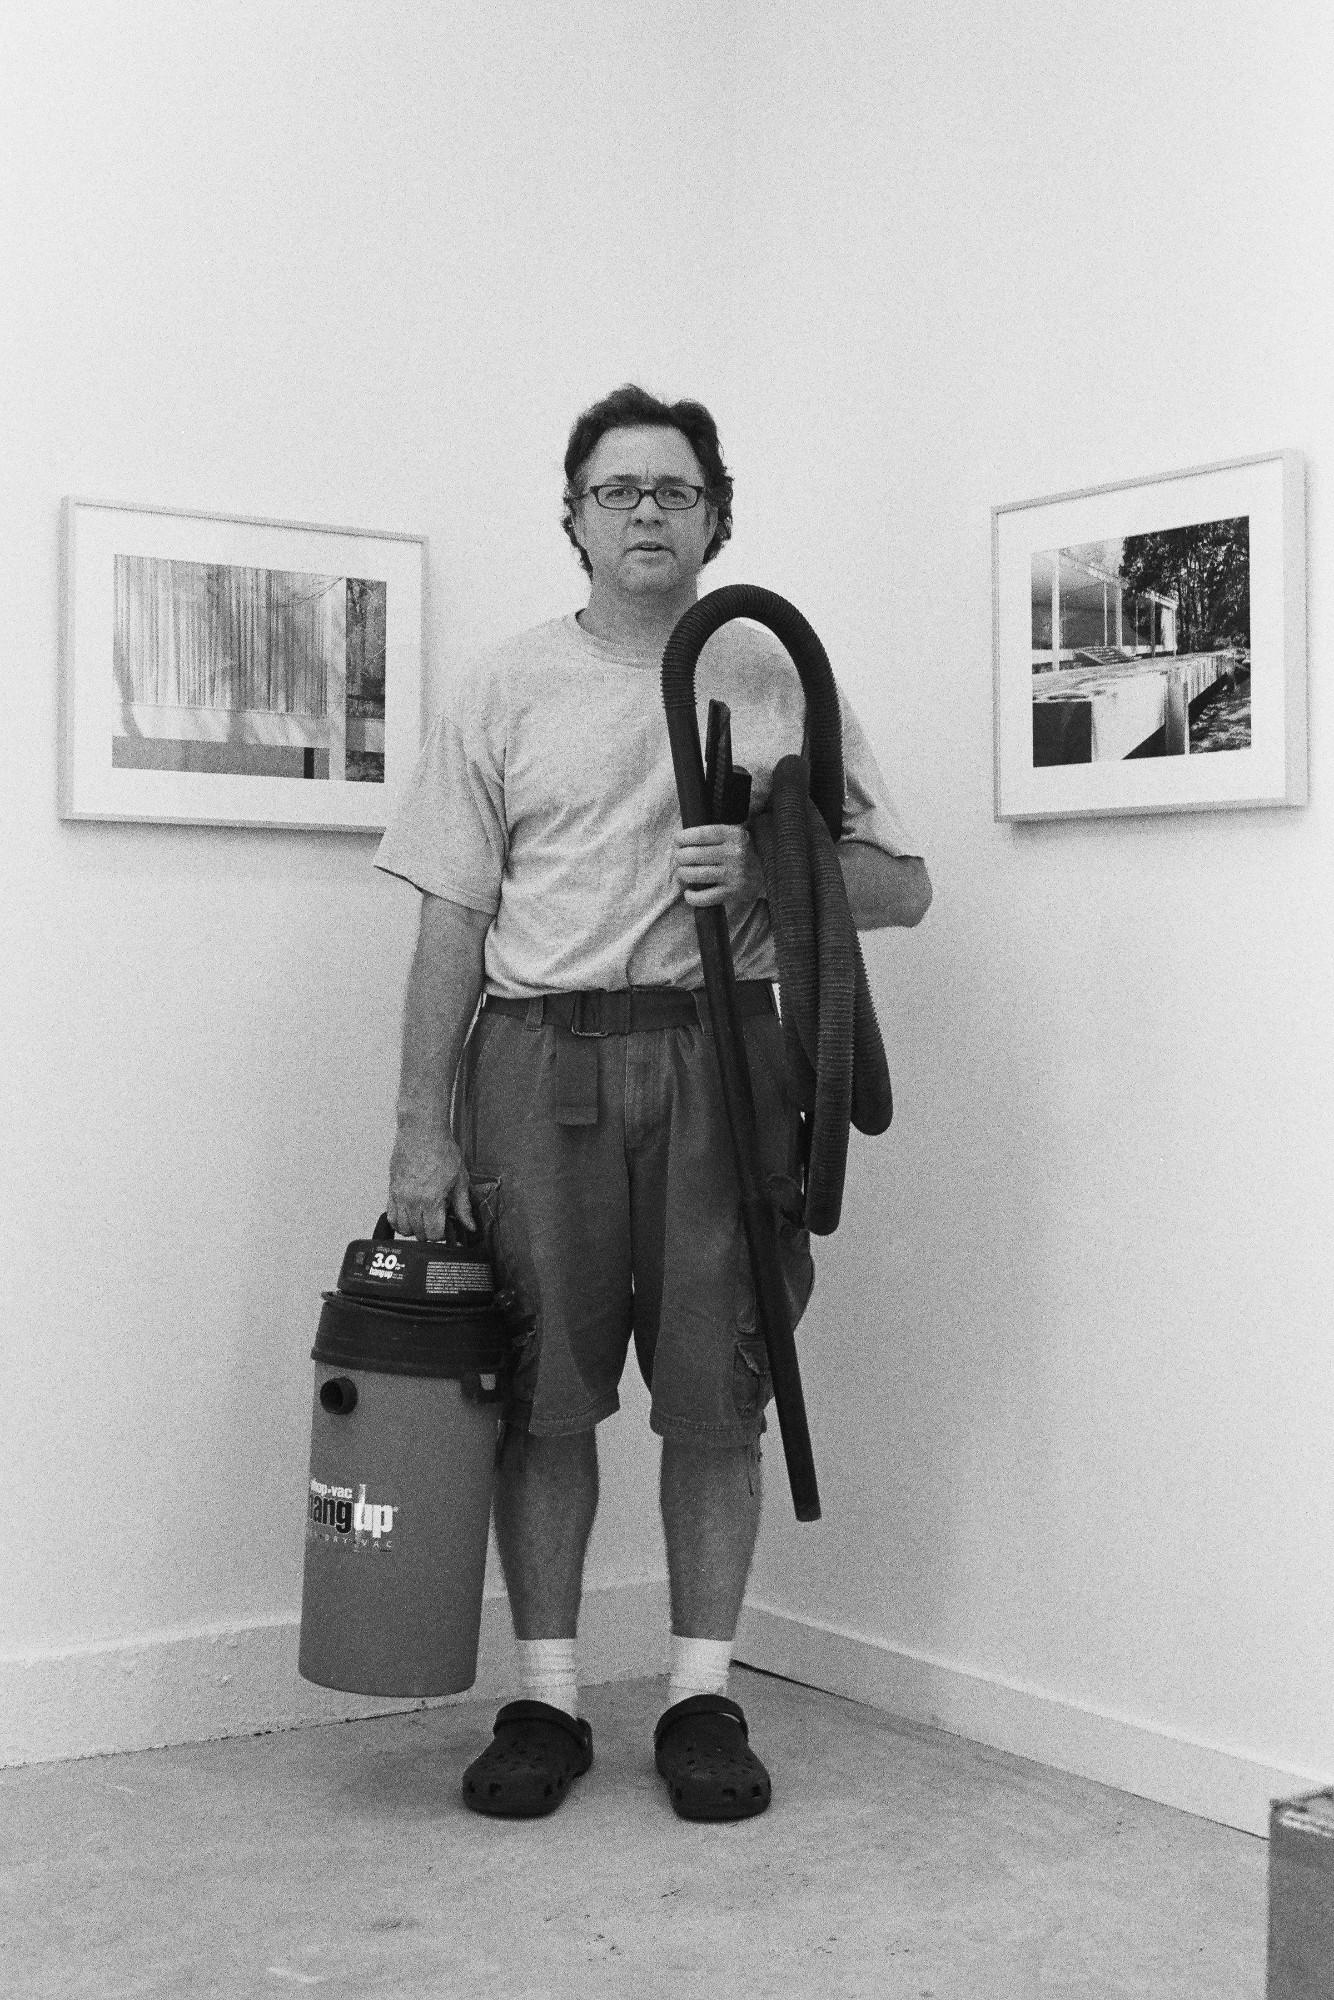 Walead Besht portrait photograph of a man in t-shirt and jeans holding a vacuum in a gallery